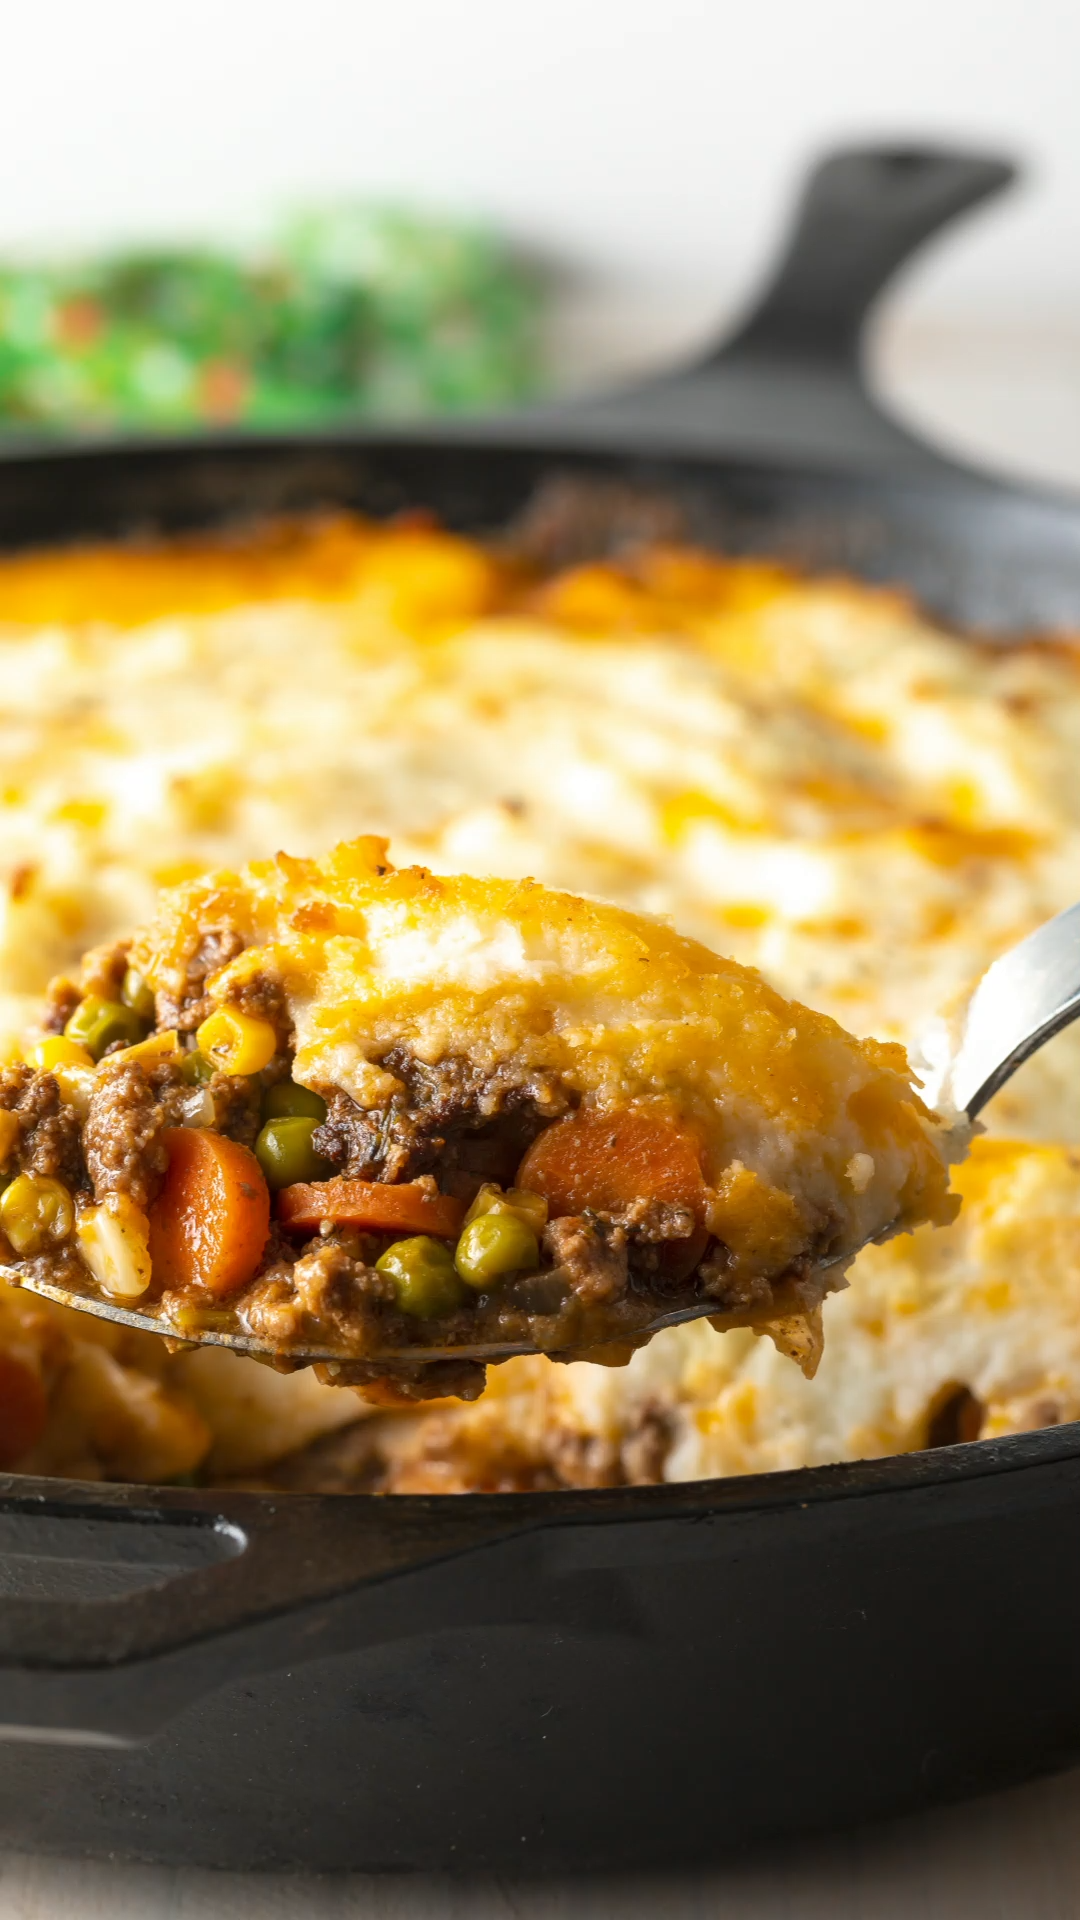 The Best Cottage Pie Recipe (Shepherd's Pie with Beef!) Learn How to Make Shepherd's Pie in ONE POT for Saint Patrick's Day!  #aspicyperspective #foodblog #foodie #instayum #hungry #thekitchn #onmytable #dailyfoodfeed #foodlove #foodpic #instafood #foodstagram #tasty #cottagepie #shepherdspie #beef #stpatricksday #stpaddysday #stpattysday  #comfortfood #whatsfordinner #delicious #treatyourself #potato #recipe #familydinner #dinners #beefandpotatoes #instafoods #feedthefamily